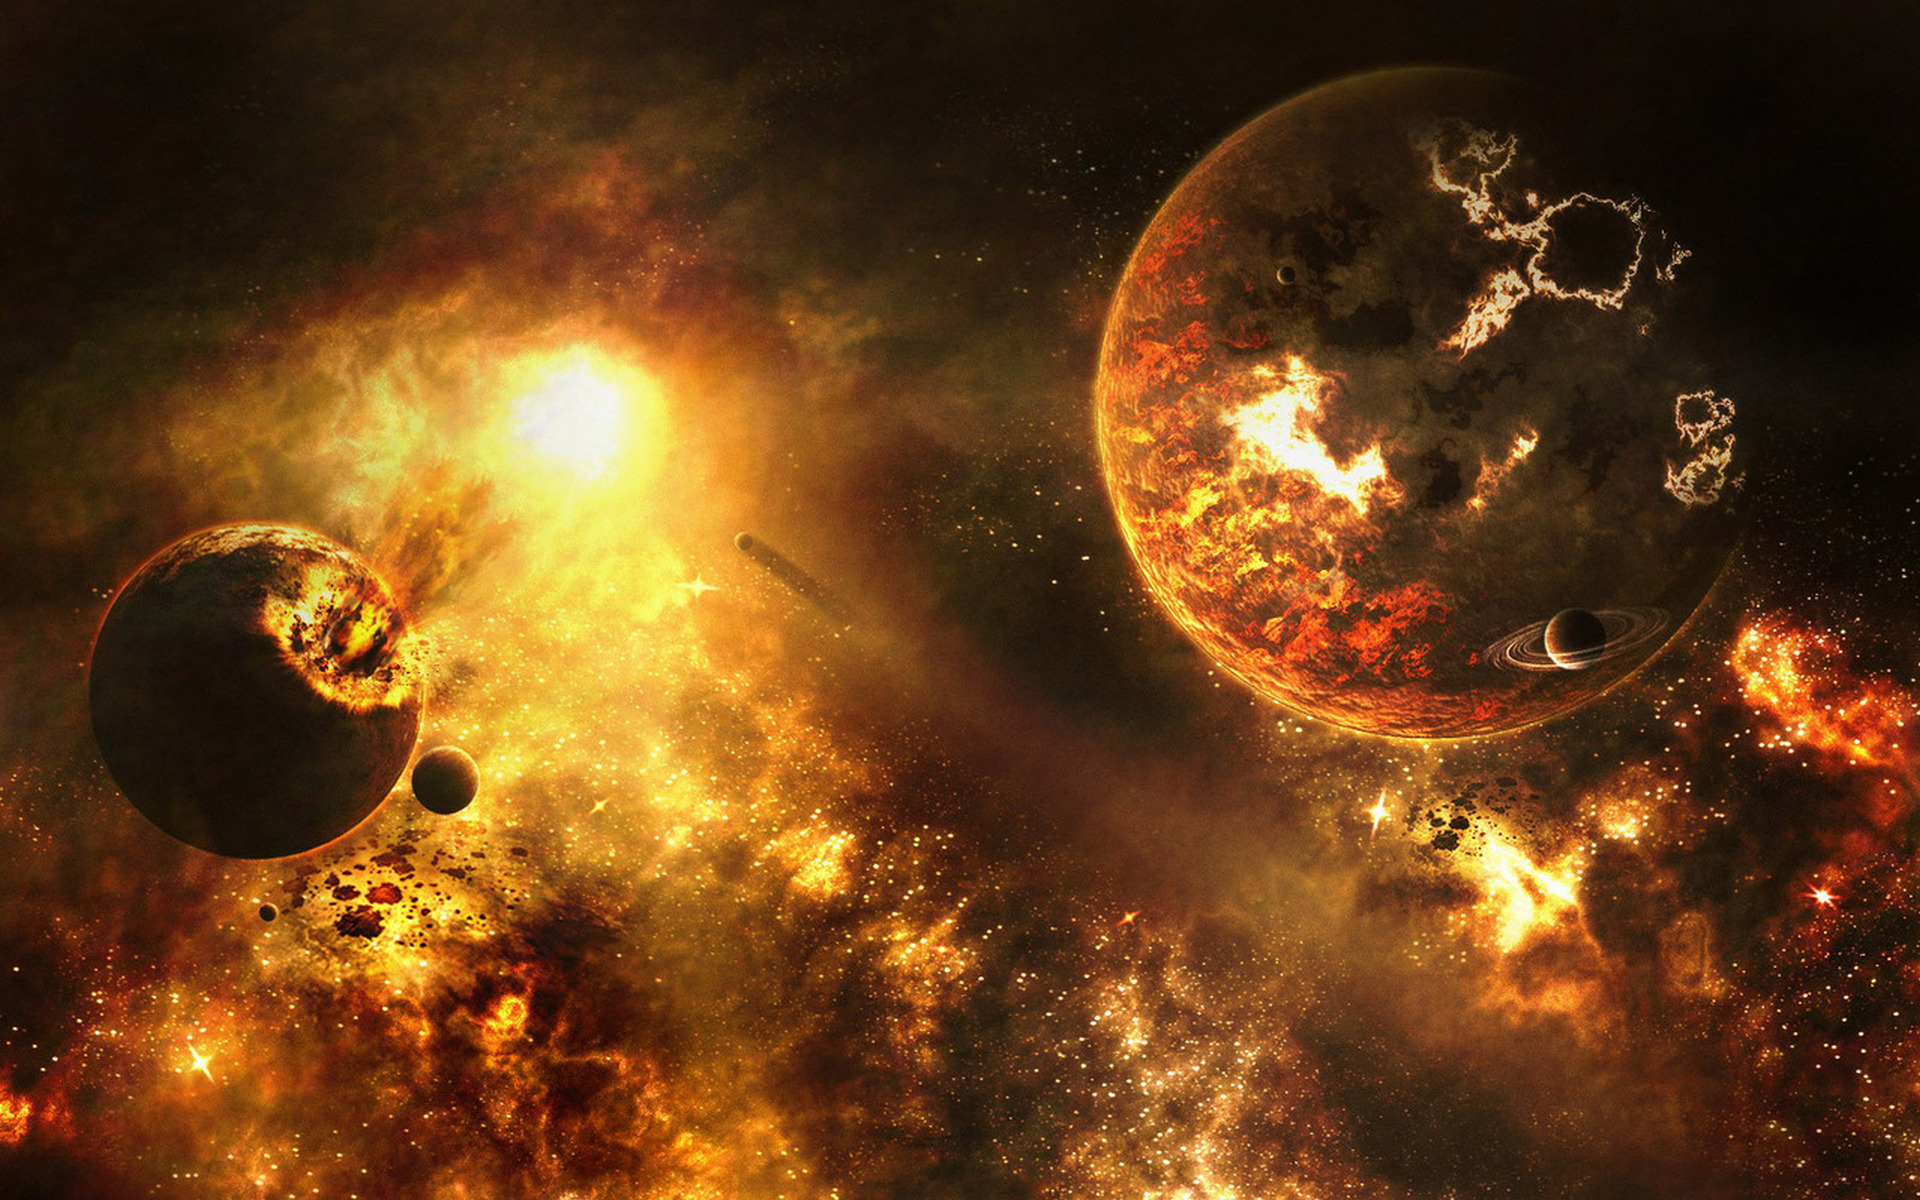 Cool Explosion Wallpaper 8363